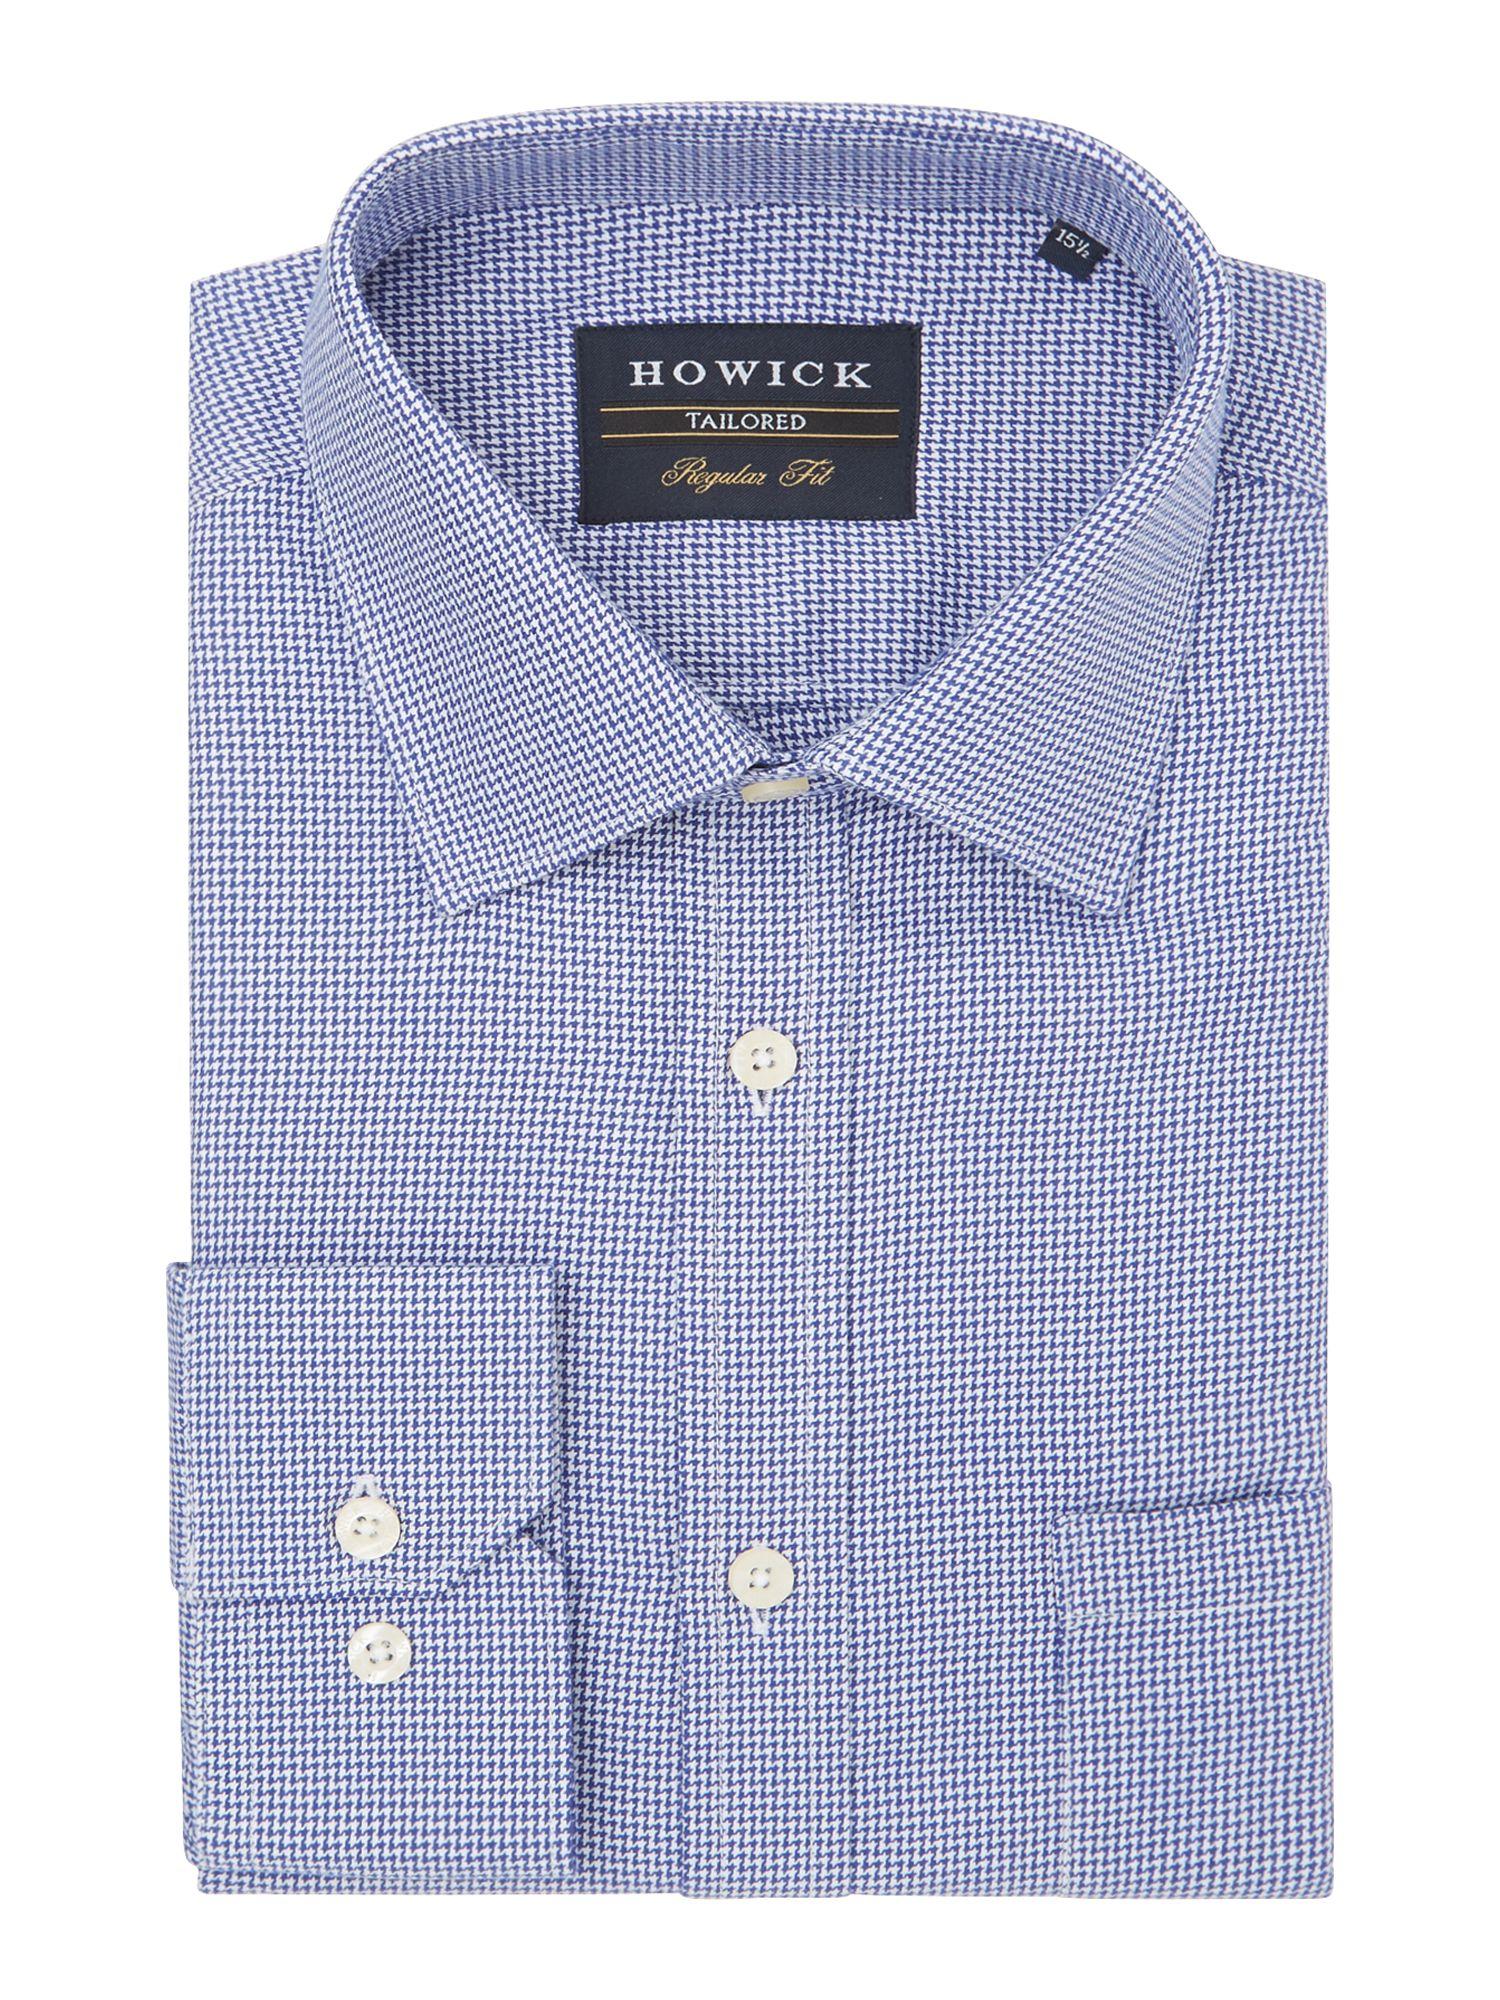 Howick Tailored Men's Howick Tailored Andover classic collar shirt with dogstooth check, Blue